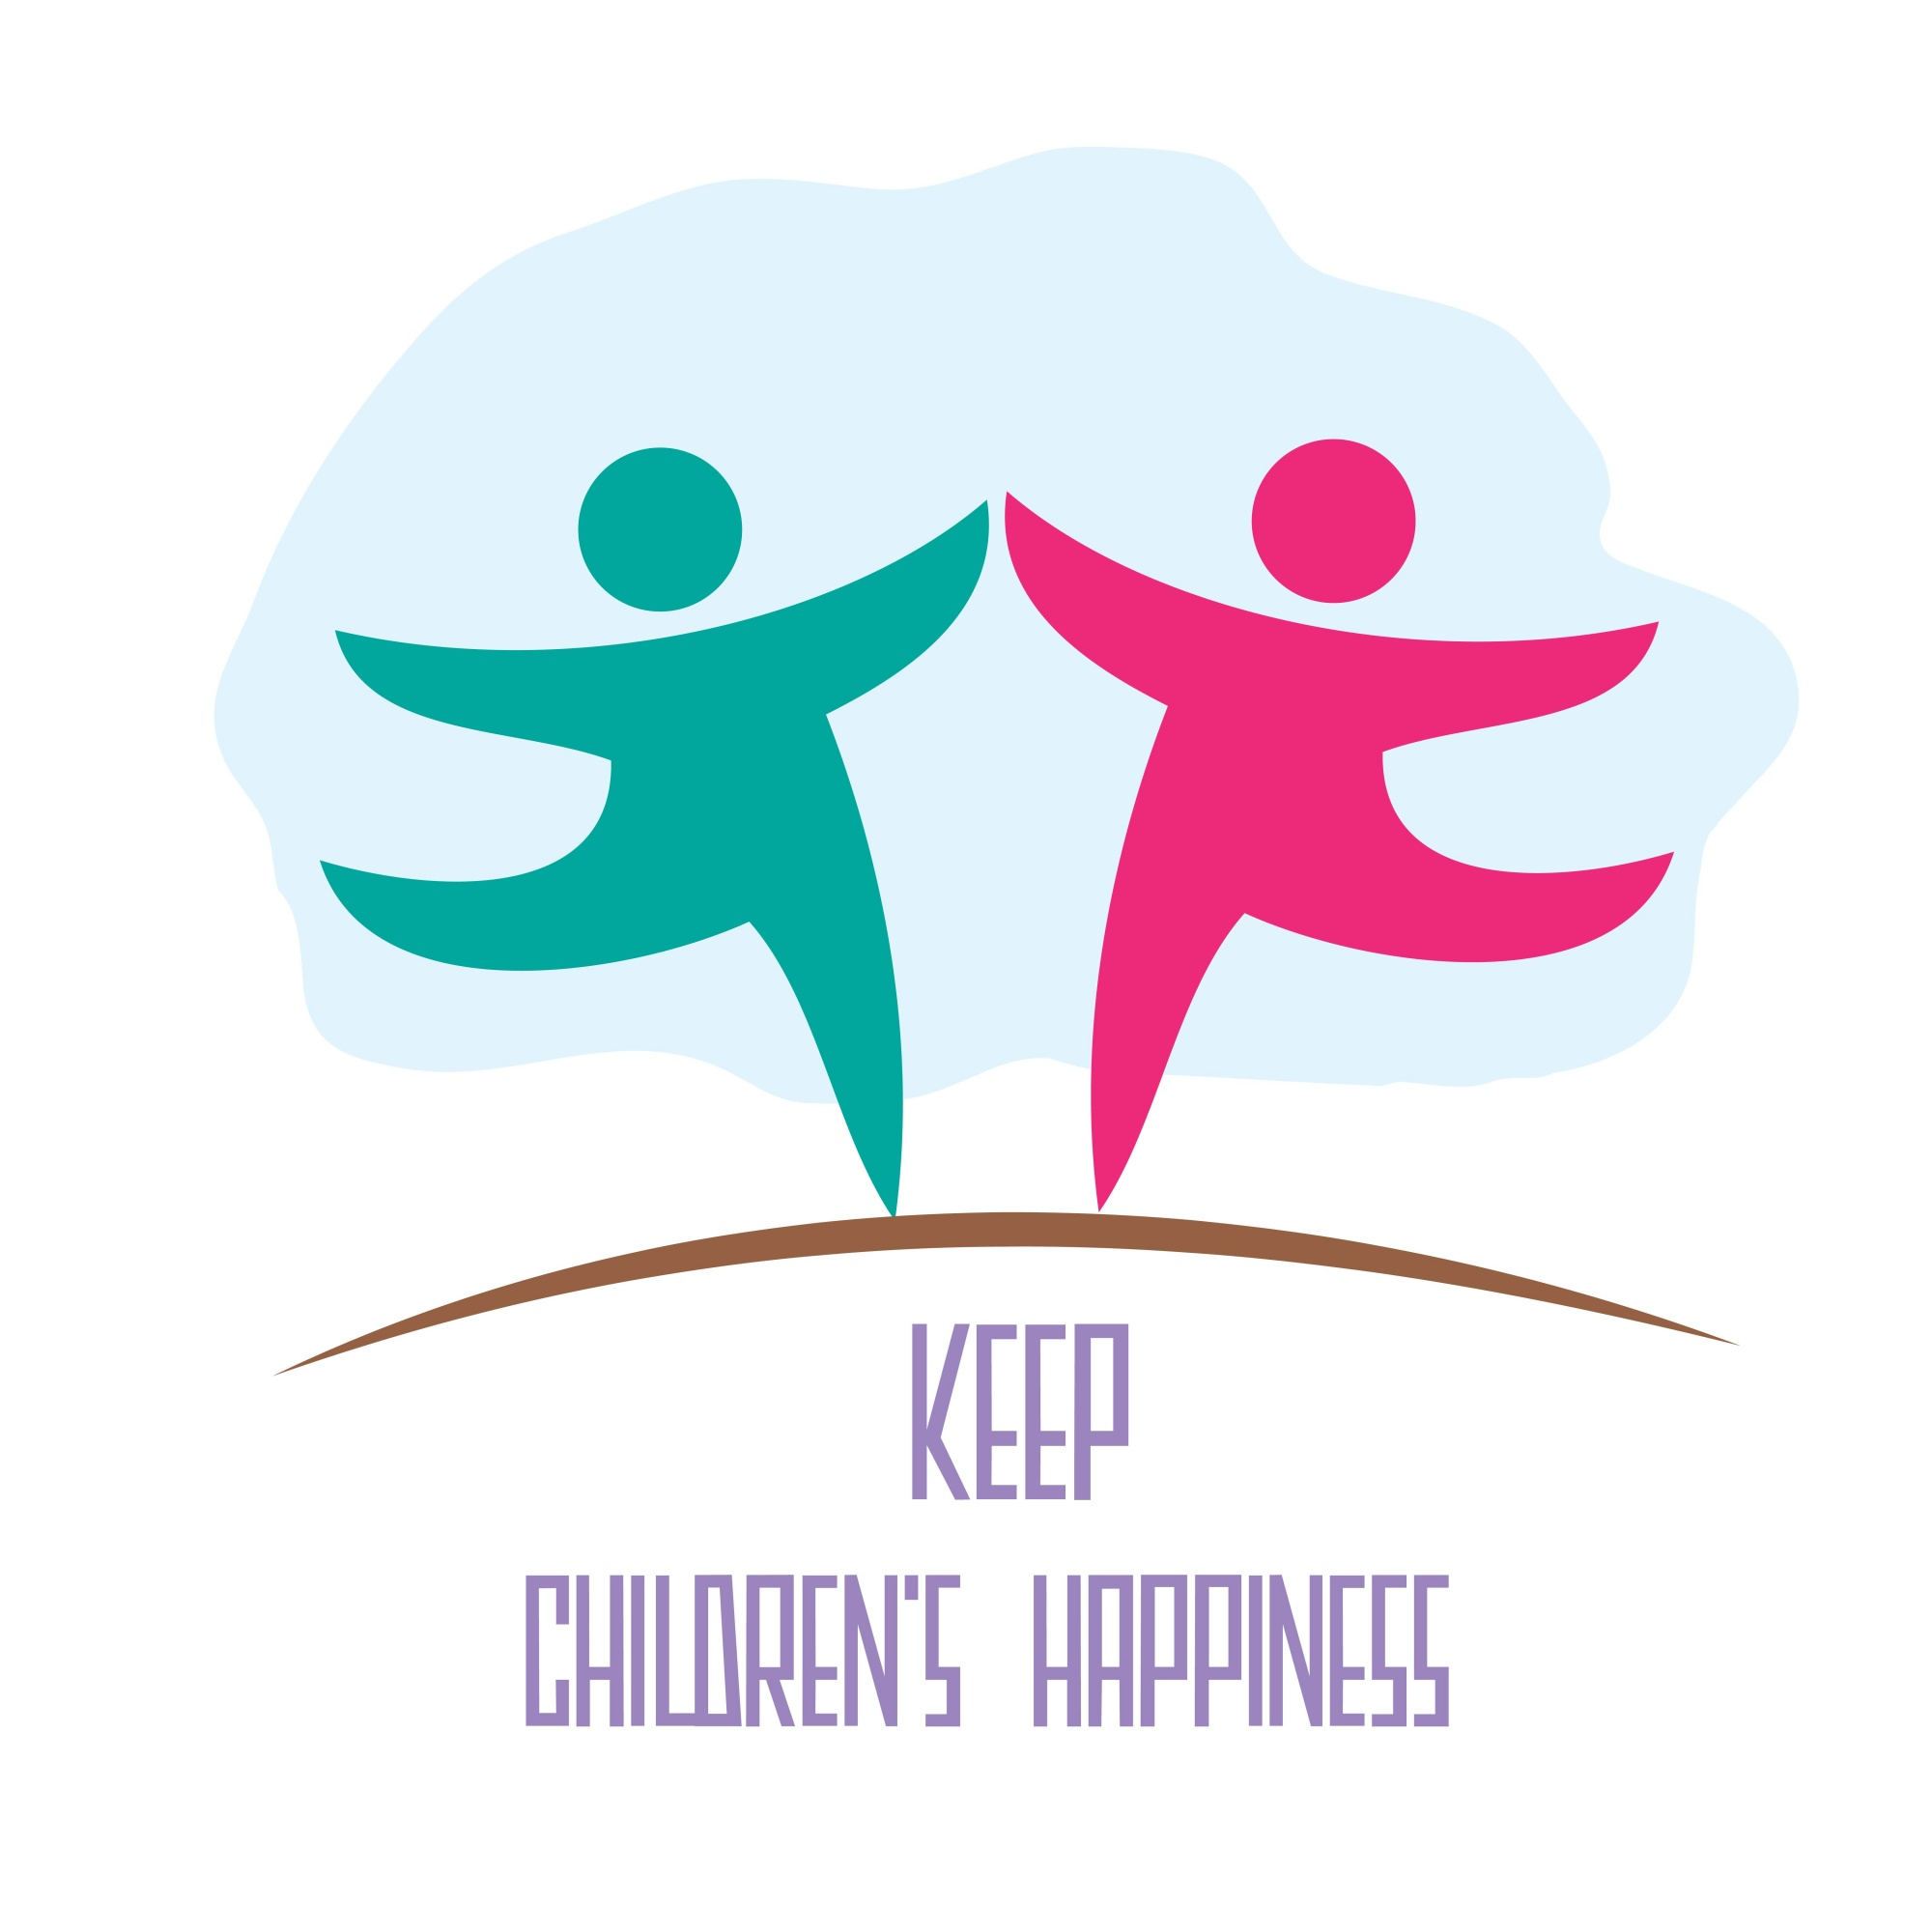 Keep childrens happiness design